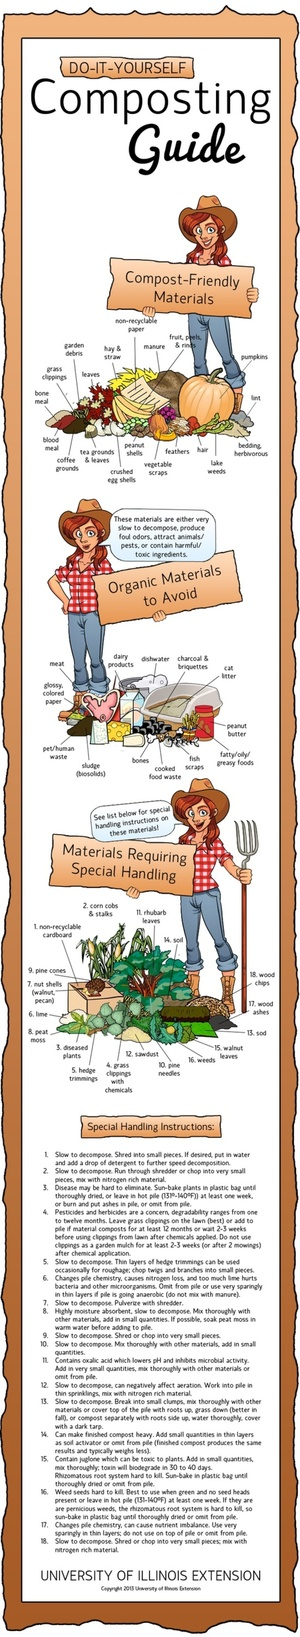 Composting for the Homeowner via The Homestead Survival